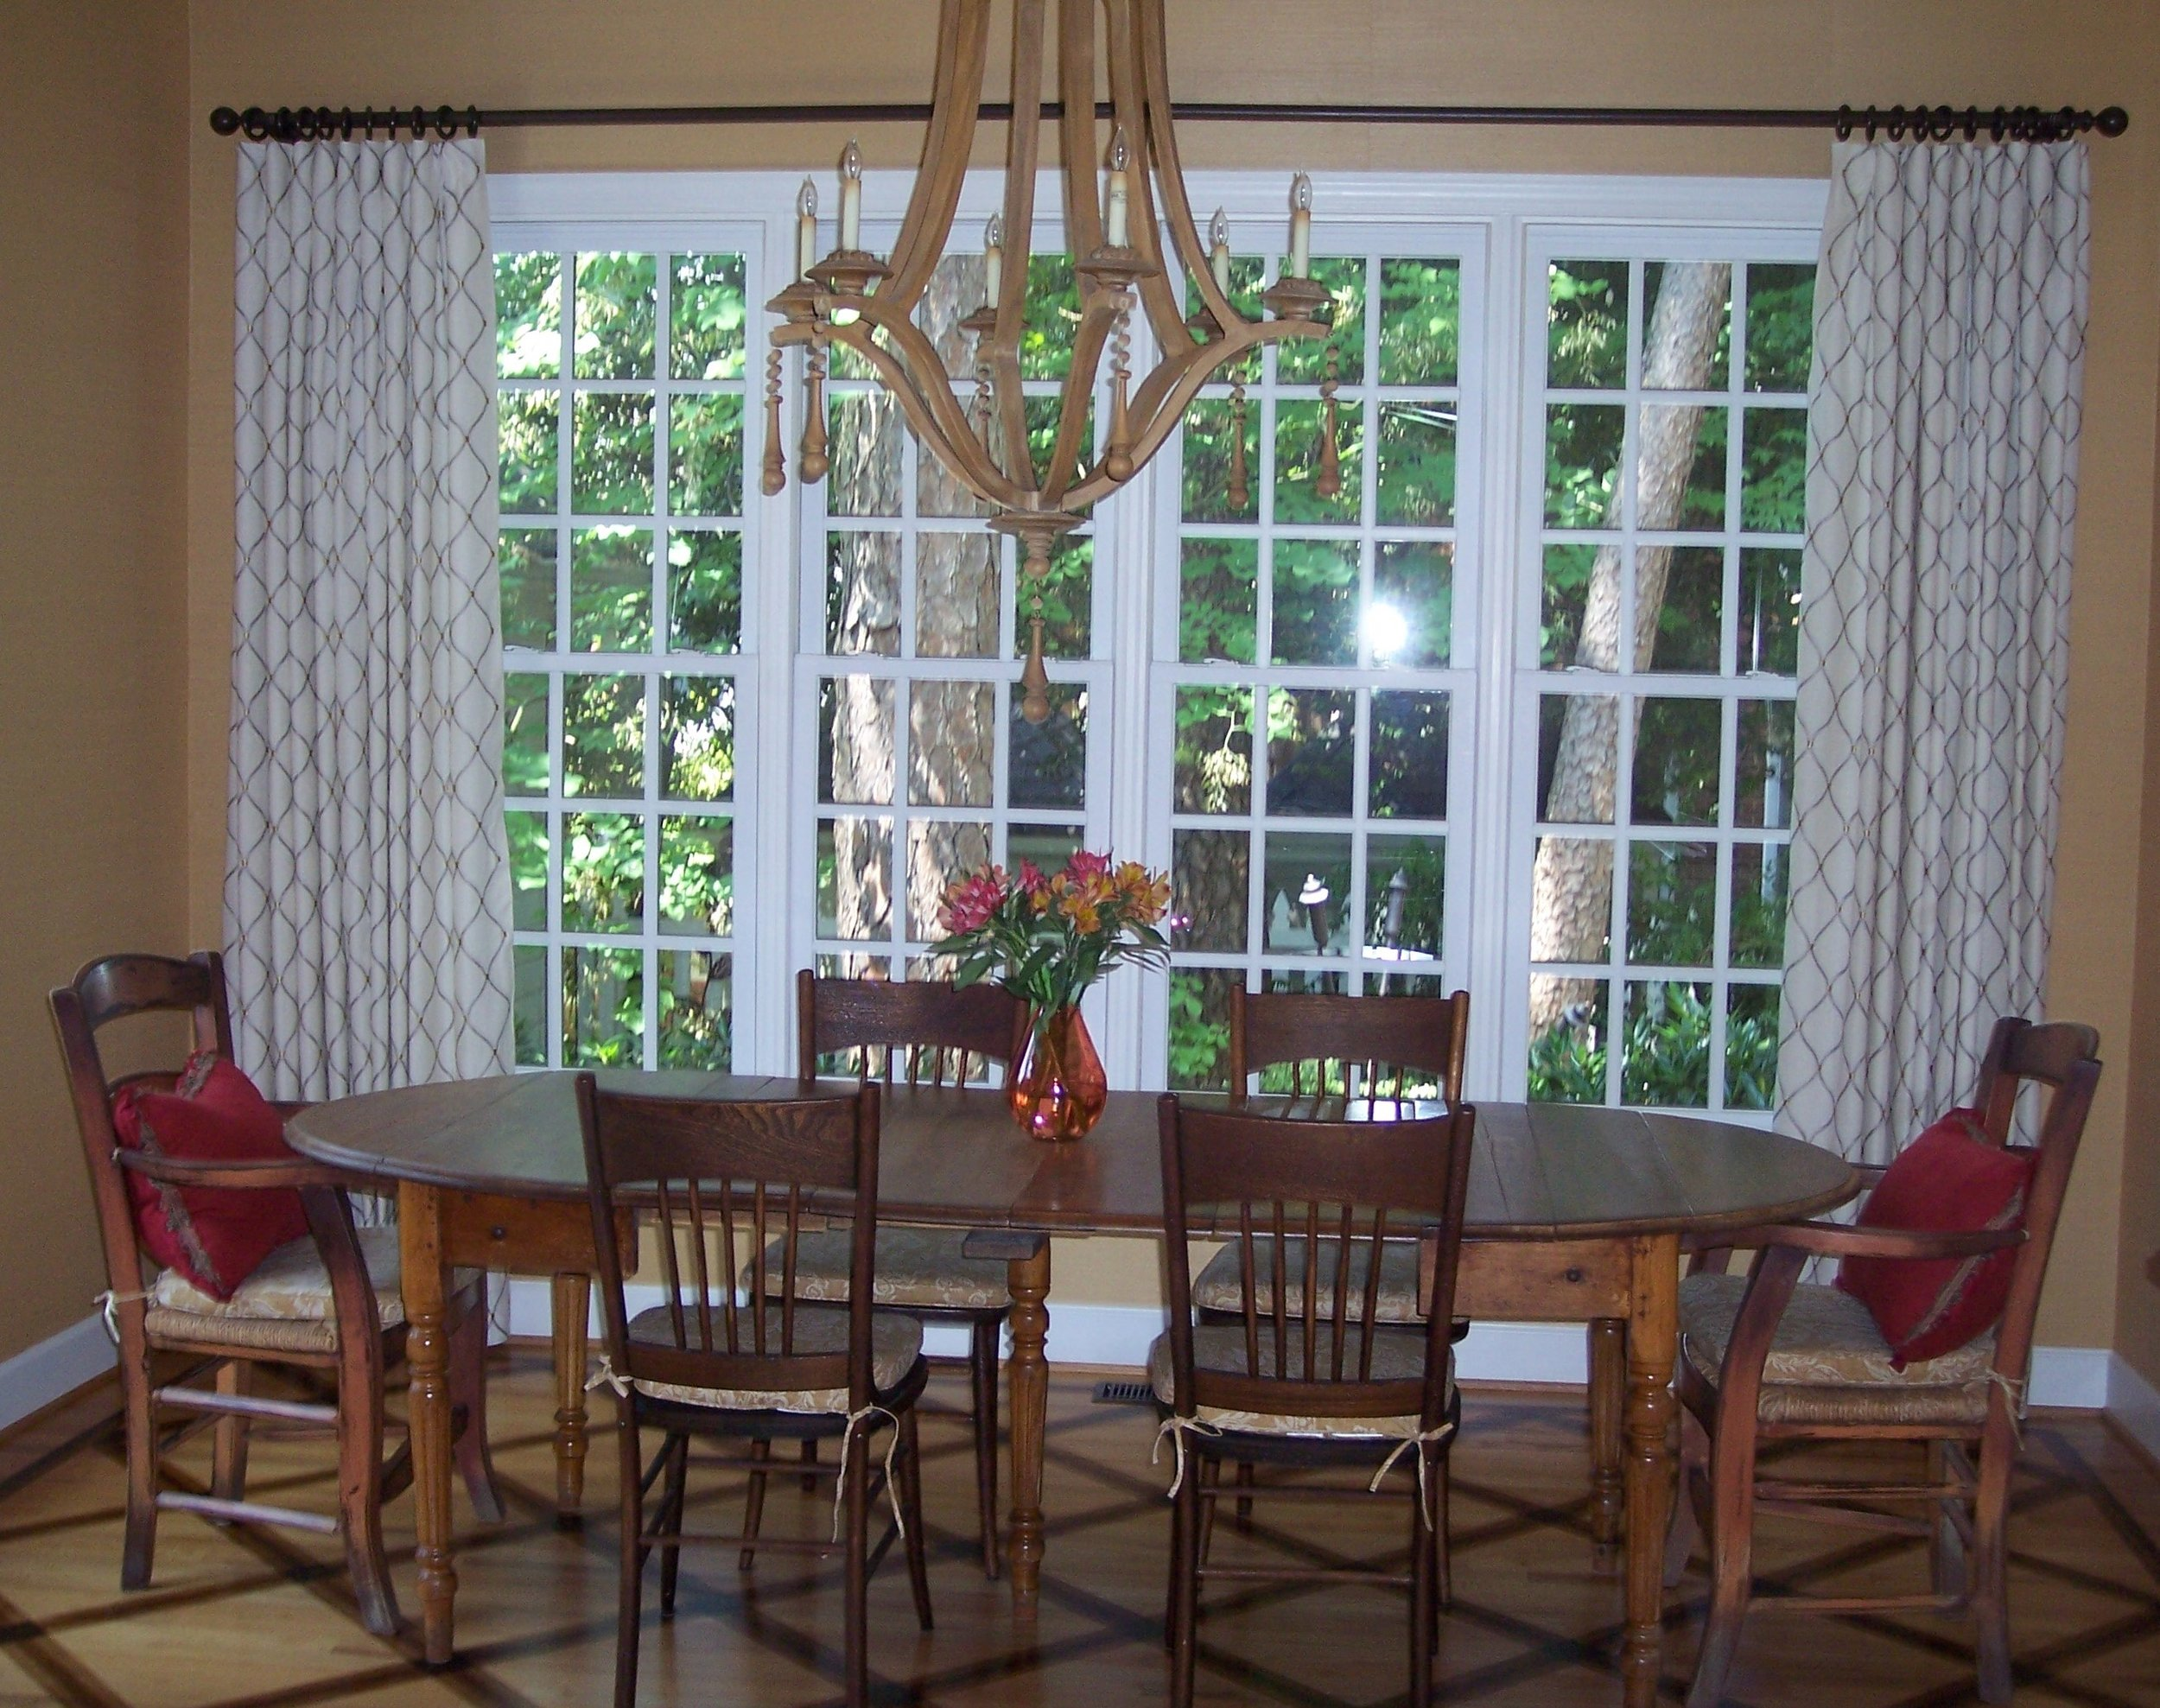 These drapes simply frame the picture window.